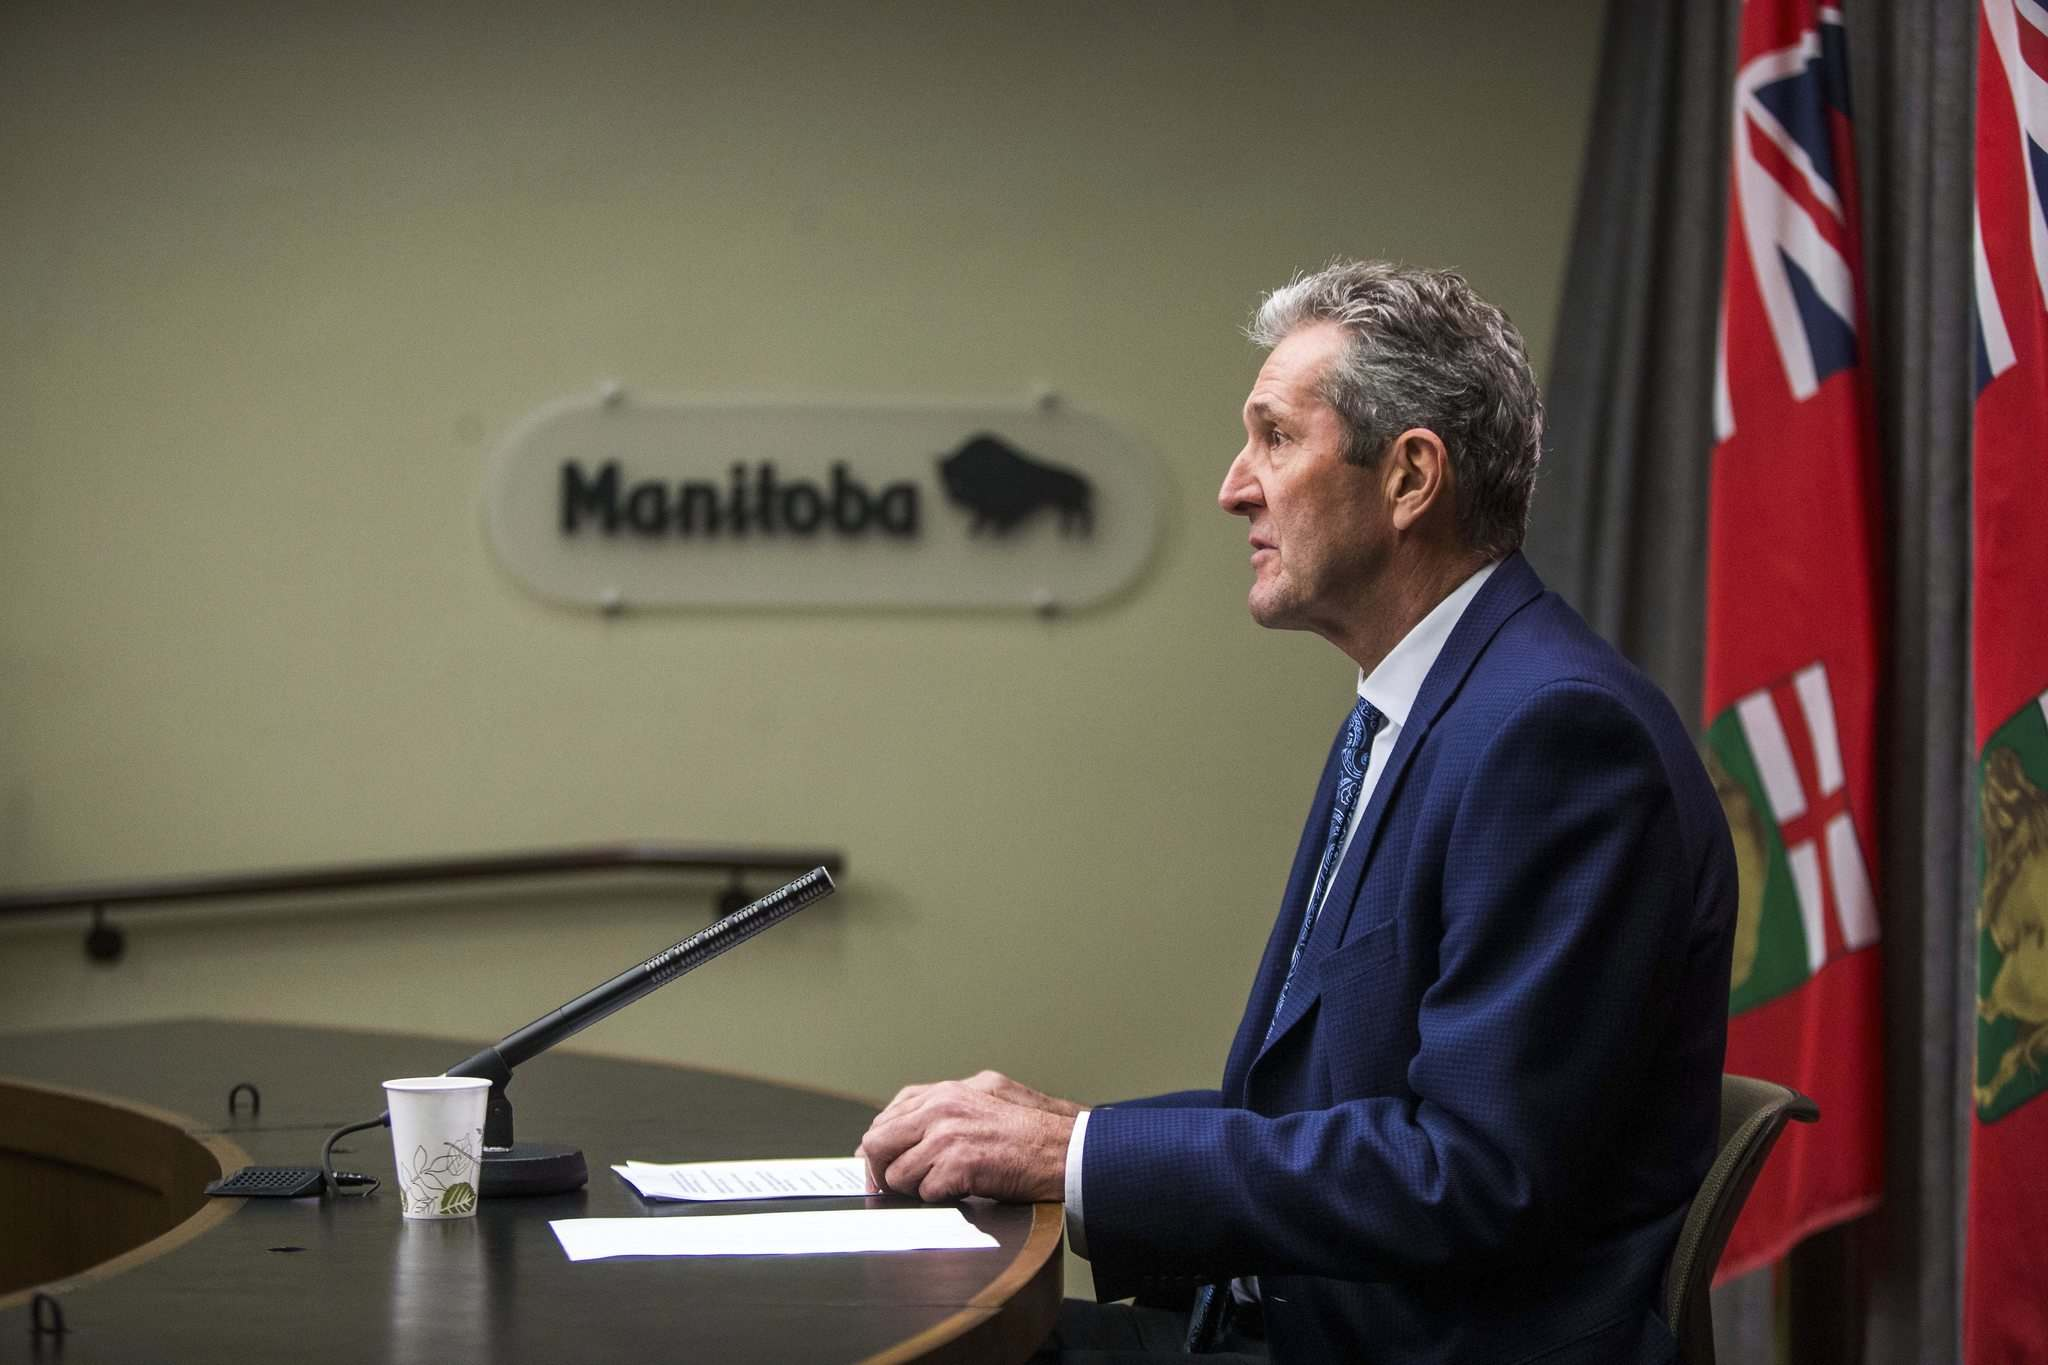 MIKAELA MACKENZIE / FREE PRESS FILES</p><p>Premier Brian Pallister announced Tuesday the Workers Compensation Board will return close to $37 million in surplus funds to employers.</p></p>